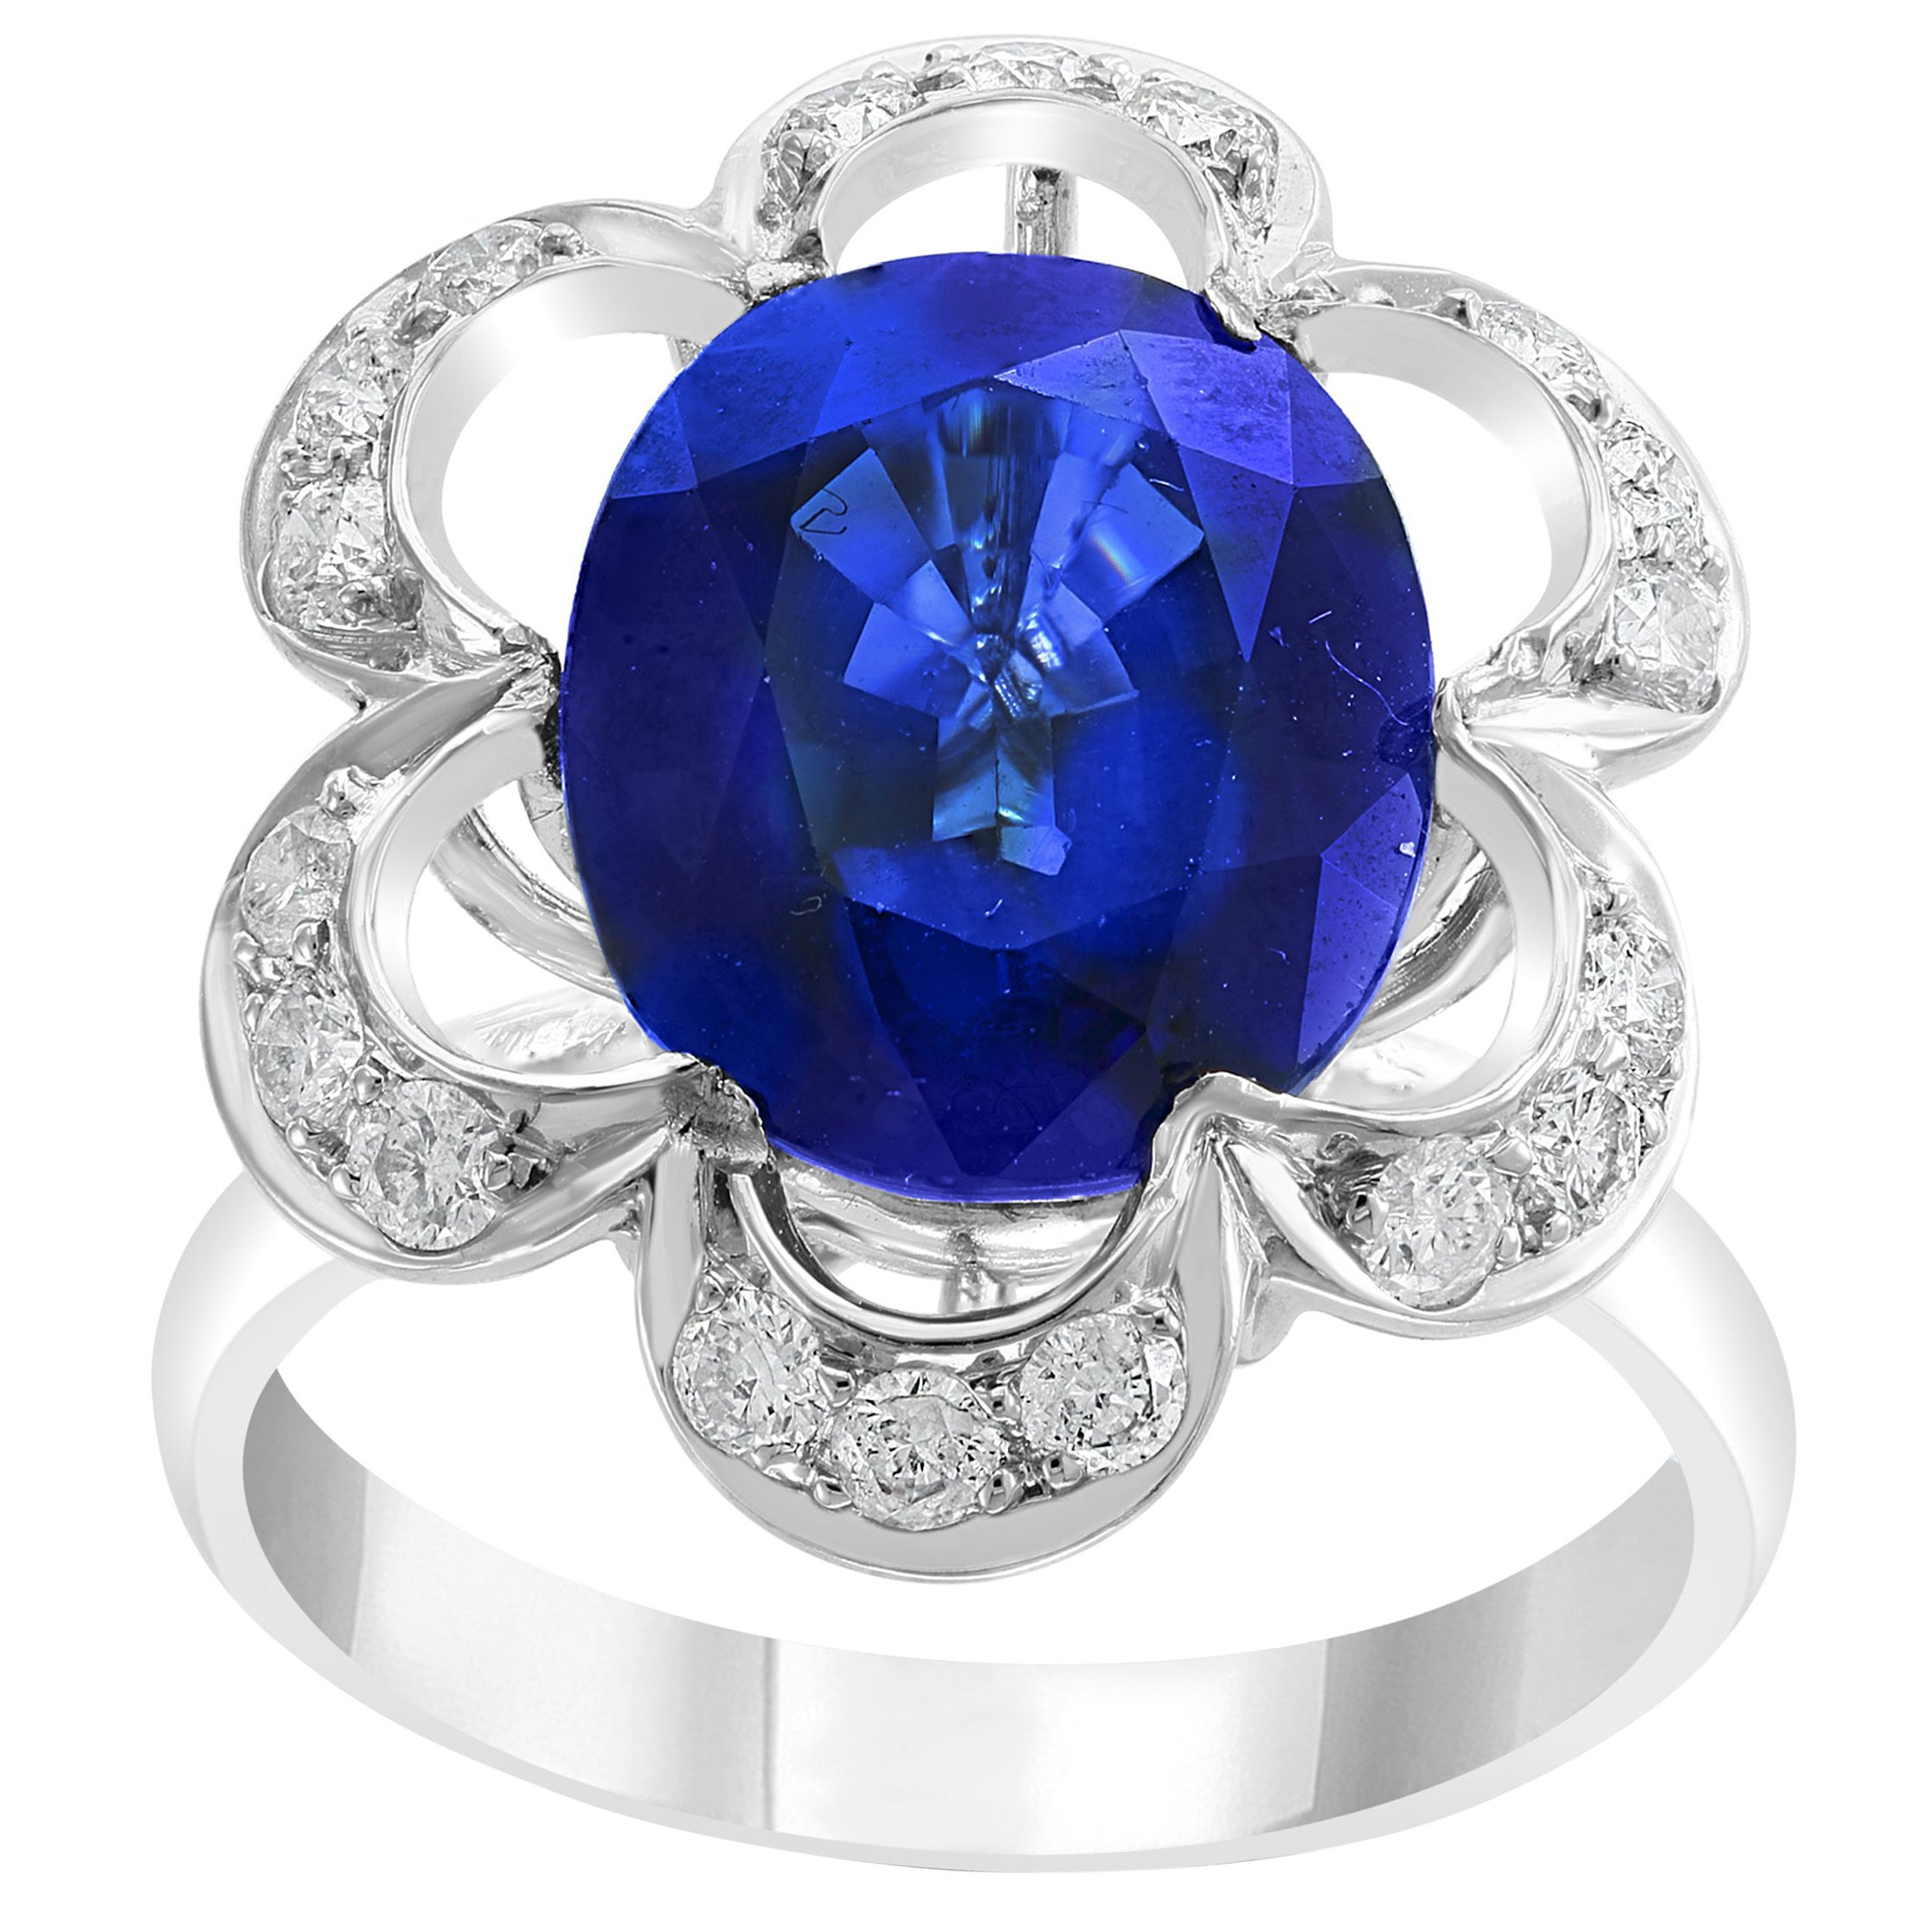 4.5 Carat Diffused Blue Sapphire and Diamond 18 Karat White Gold Cocktail Ring